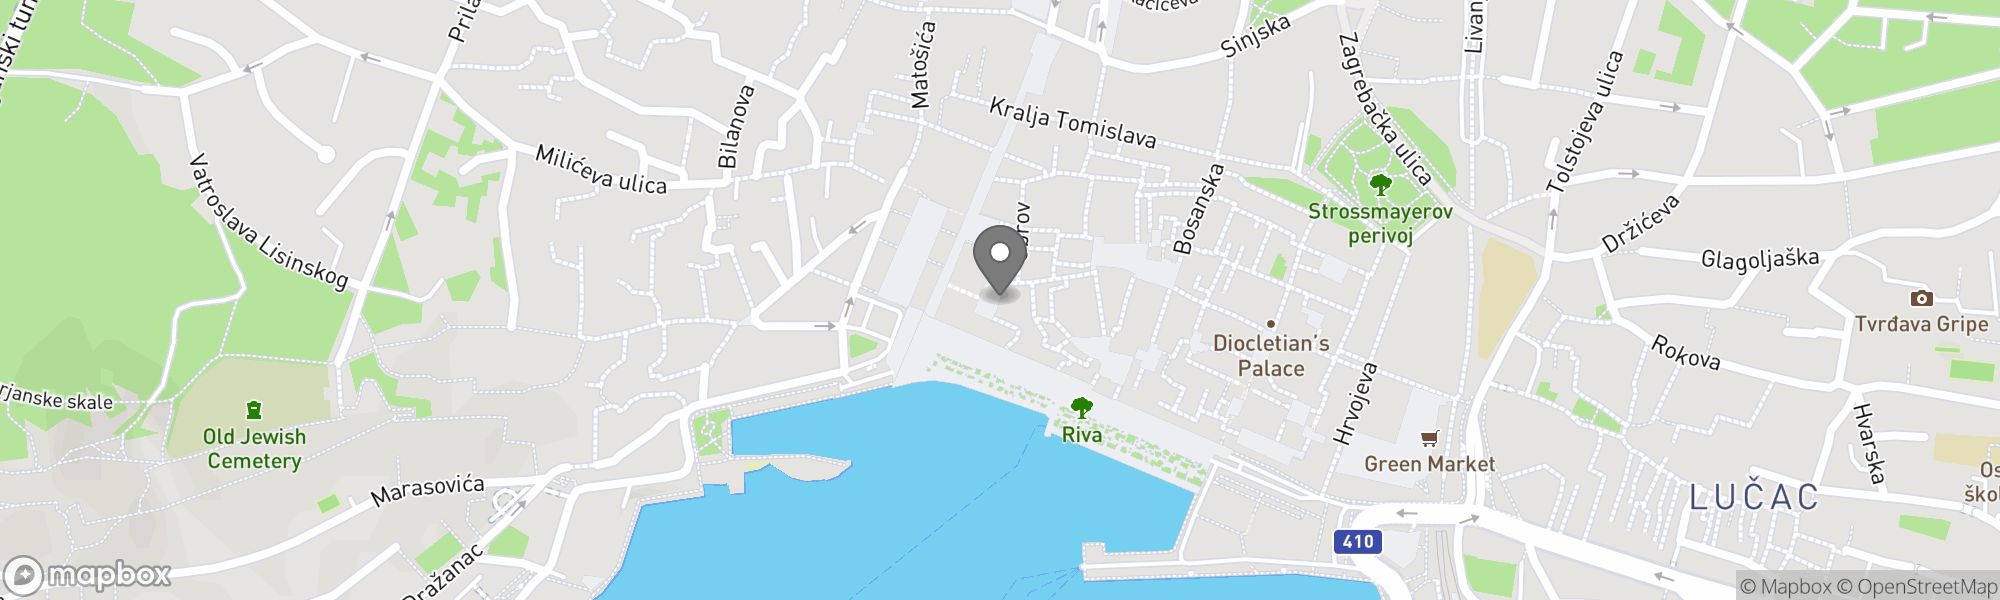 Map of Split area